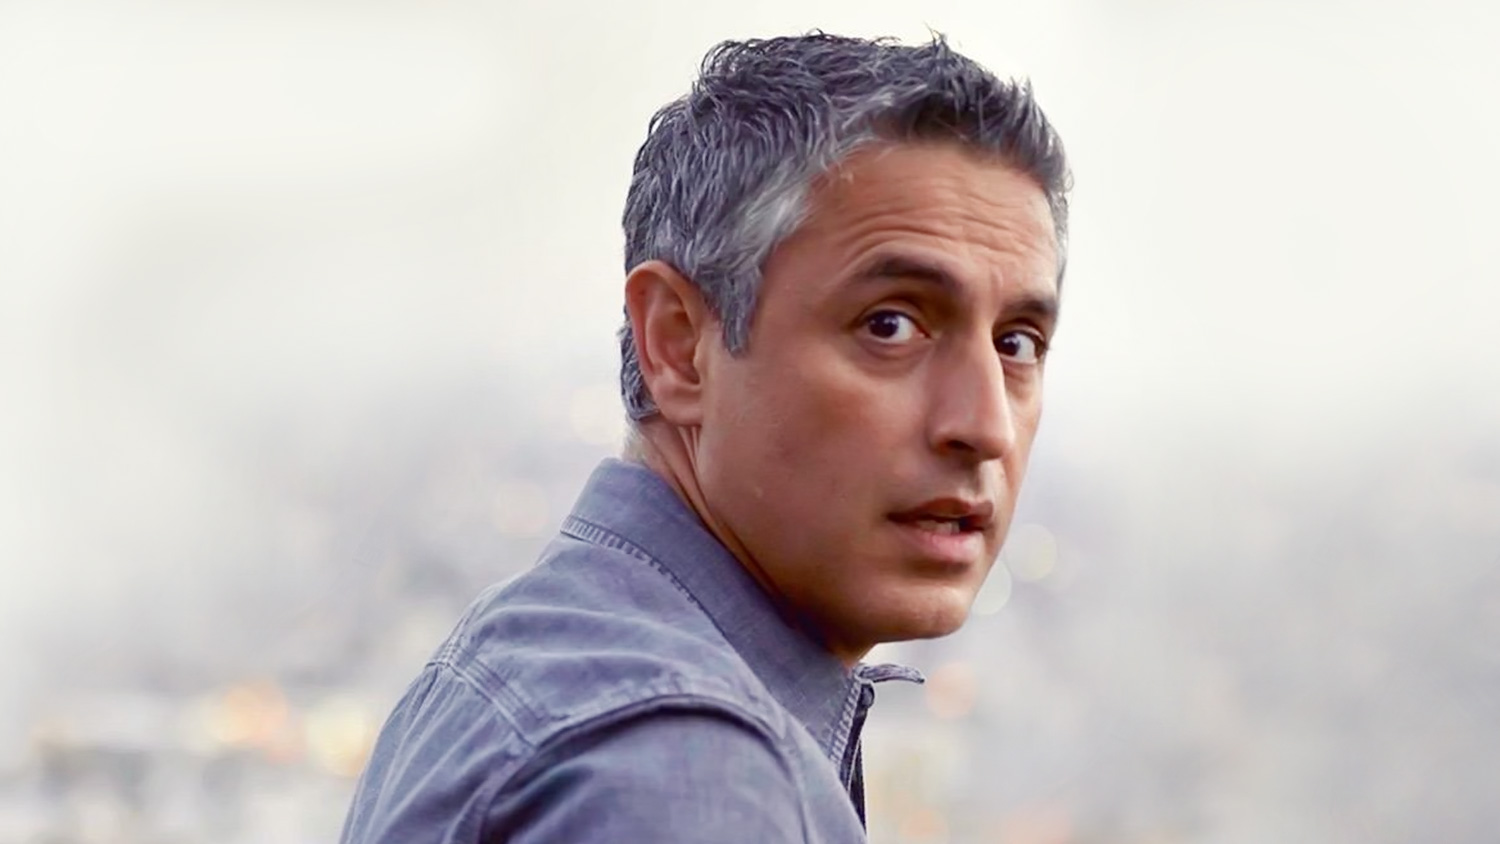 Reza Aslan - TV Host, Author, Scholar, Producer